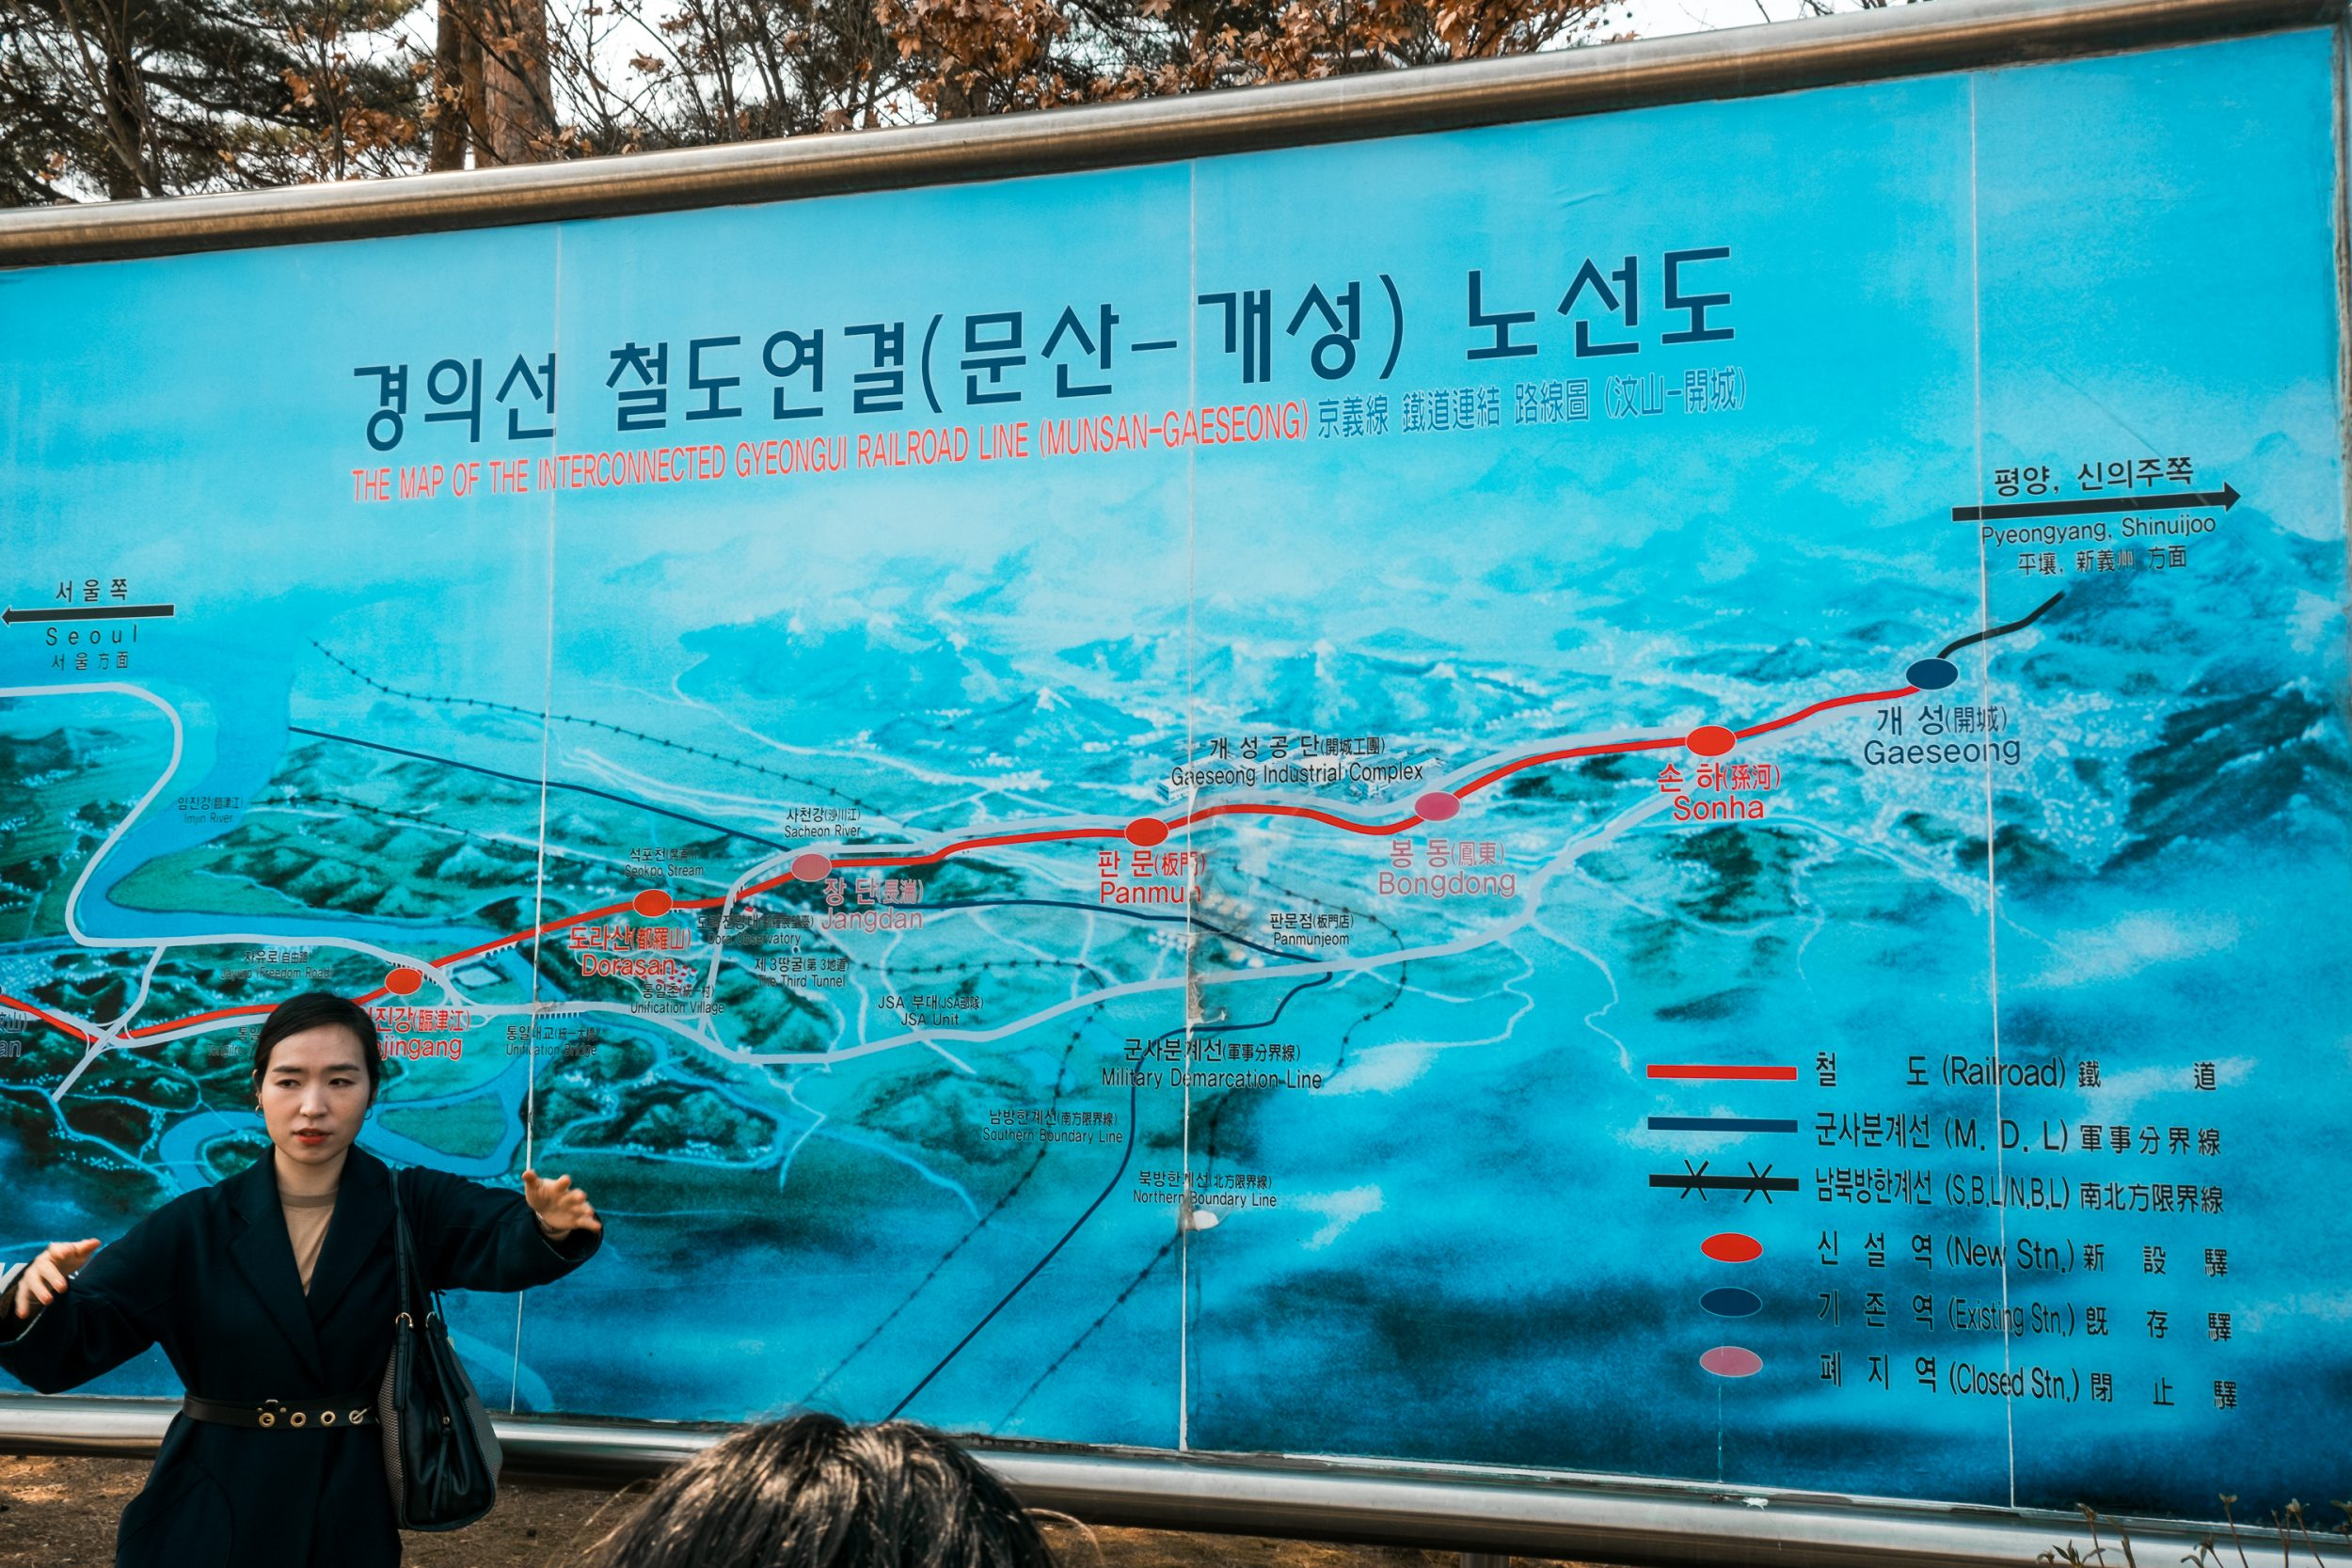 All you need to know about the South Korean DMZ Tour from Seoul. Read more for the complete guide on how to book your own Korea DMZ Tour and the best DMZ tour companies.